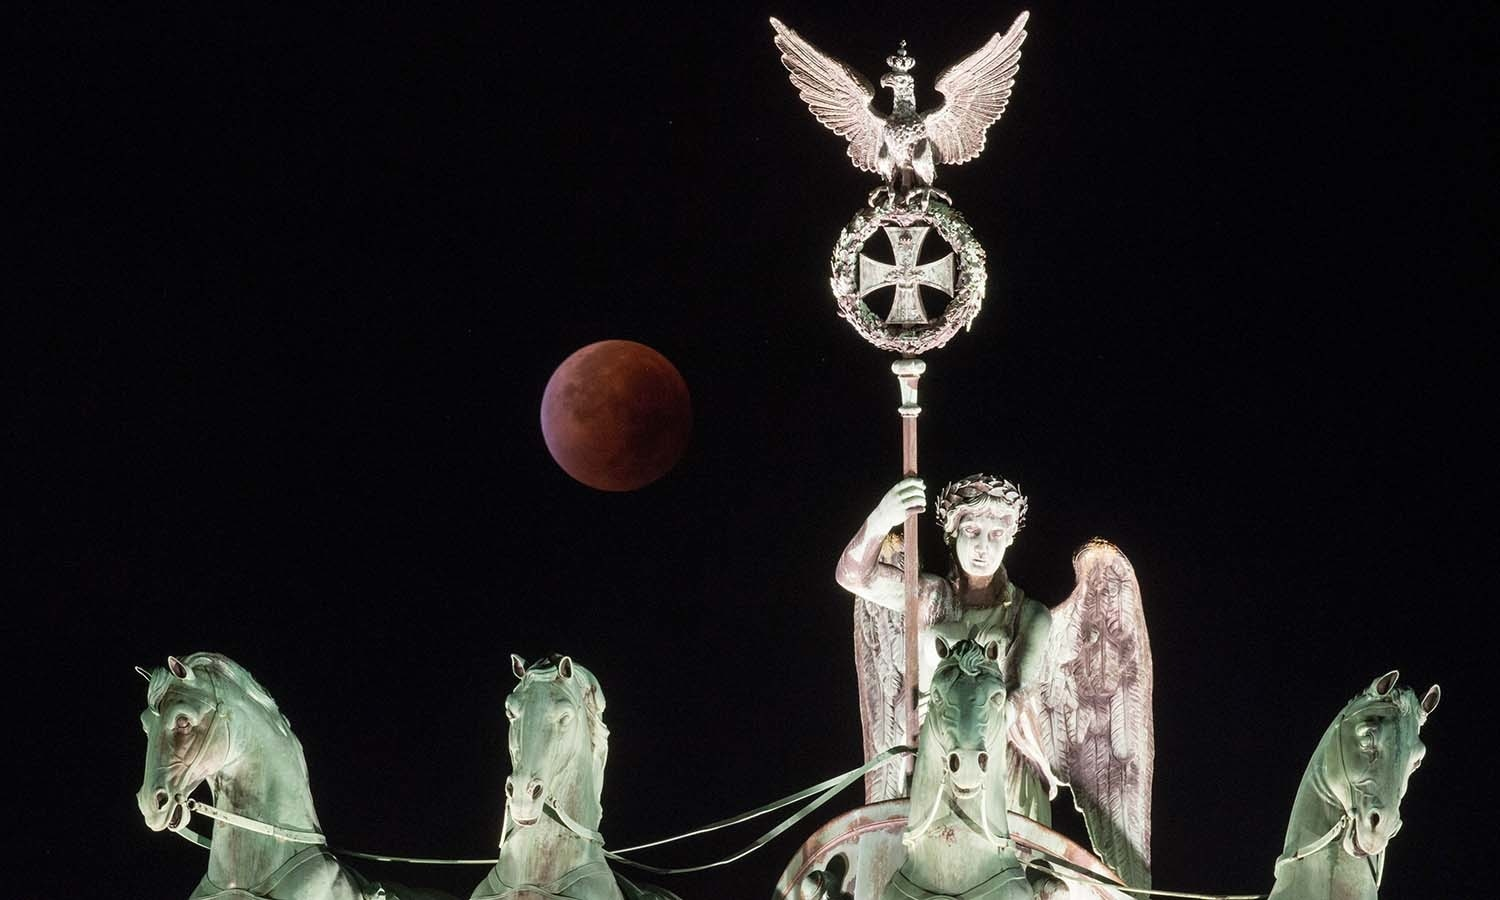 """A so-called """"blood moon"""" can be seen behind the Quadriga sculpture on top of Berlin's landmark the Brandenburg Gate during a total lunar eclipse. — AFP"""